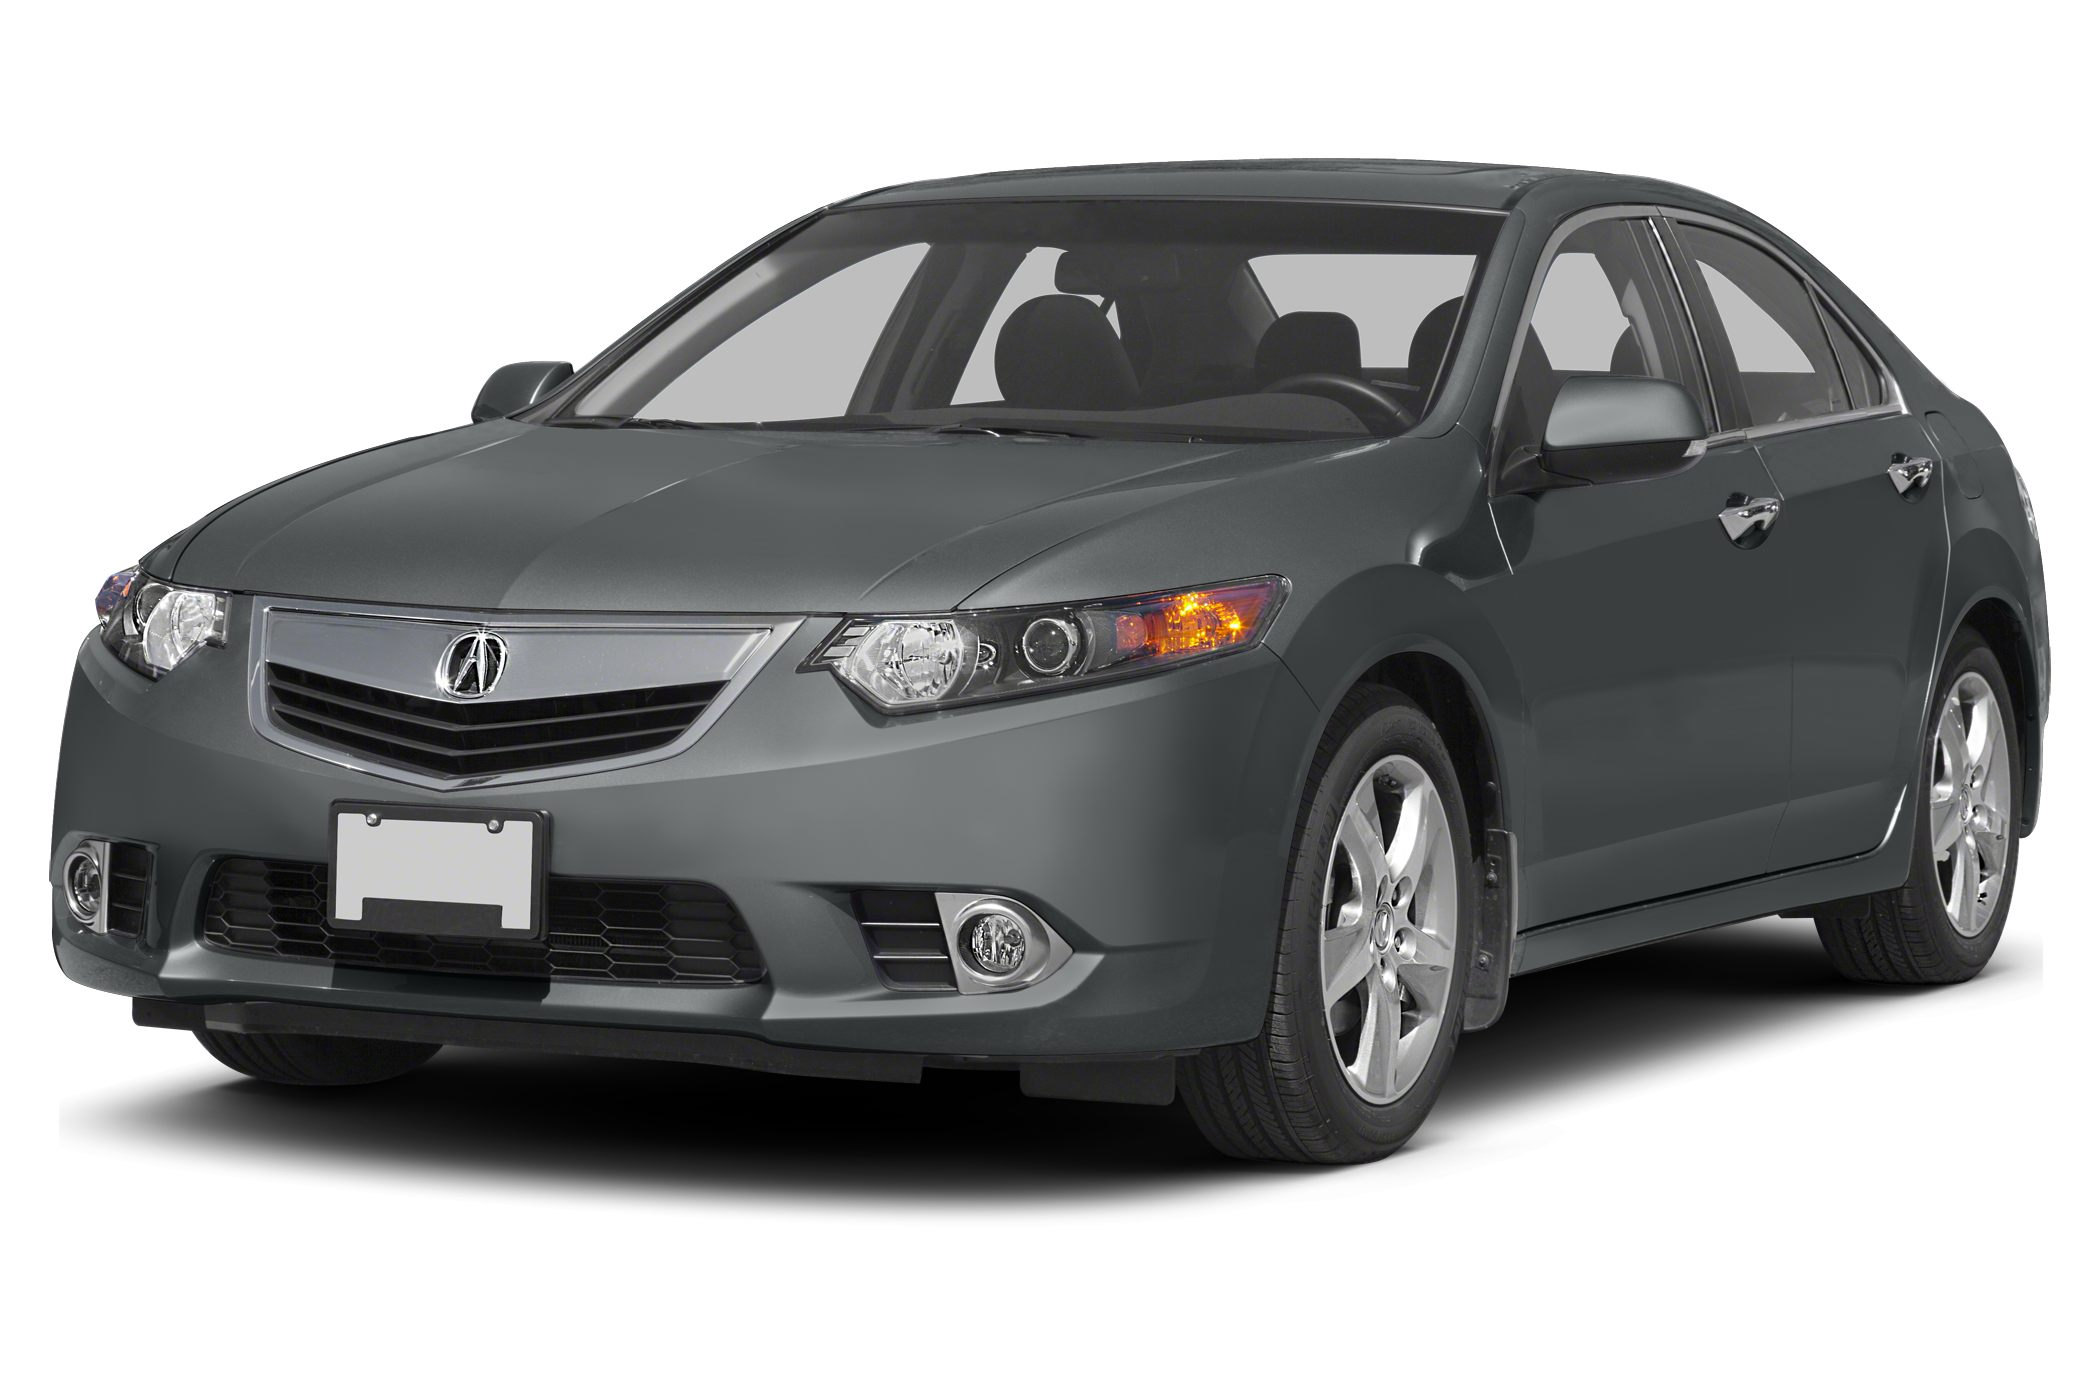 2013 Acura TSX 24 Technology Clean Carfax - One Owner - Technology Package - Navigation System -